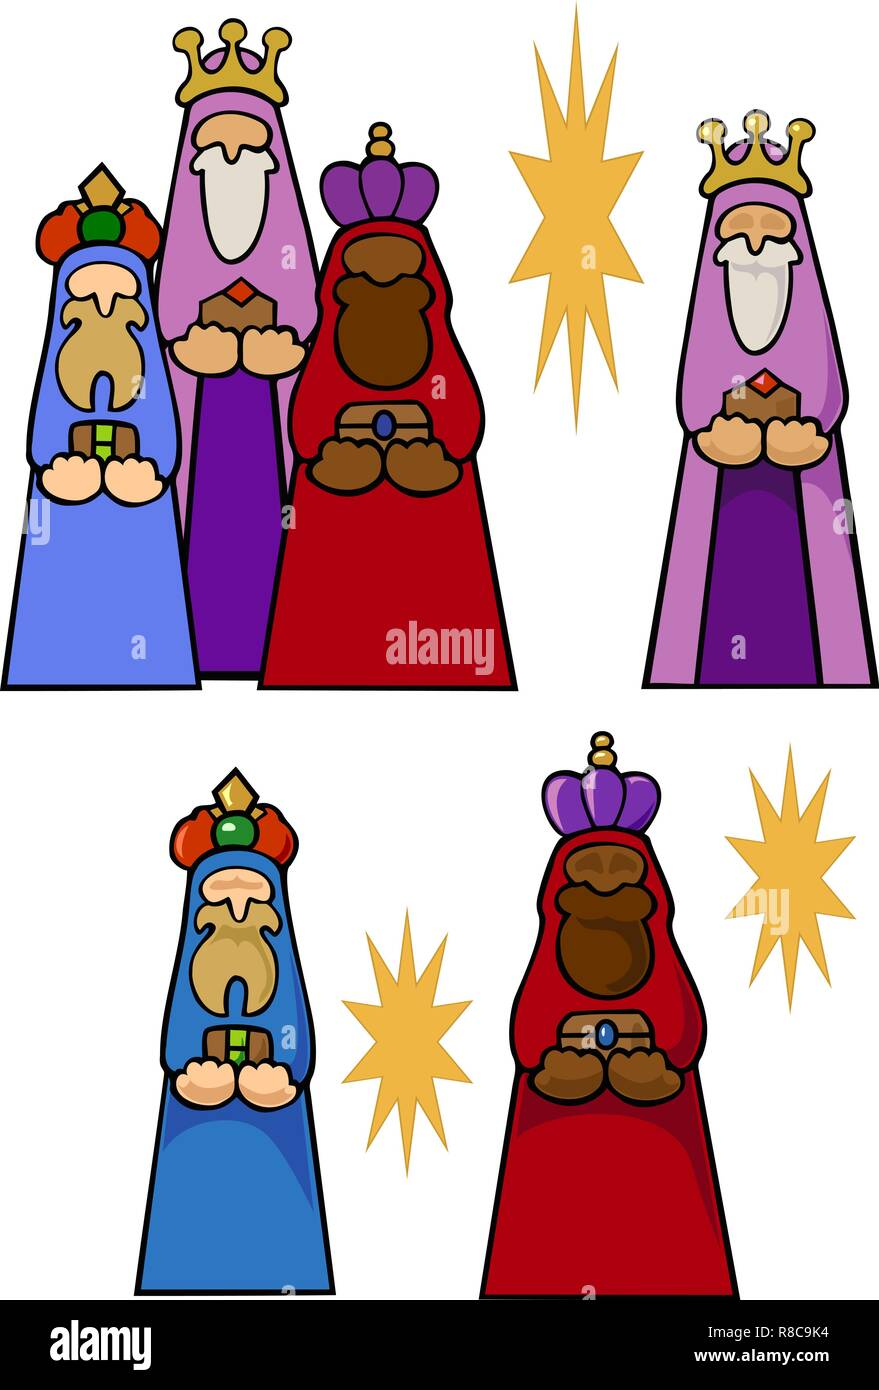 medium resolution of the magi with their gifts for the christ child and some stars variations with